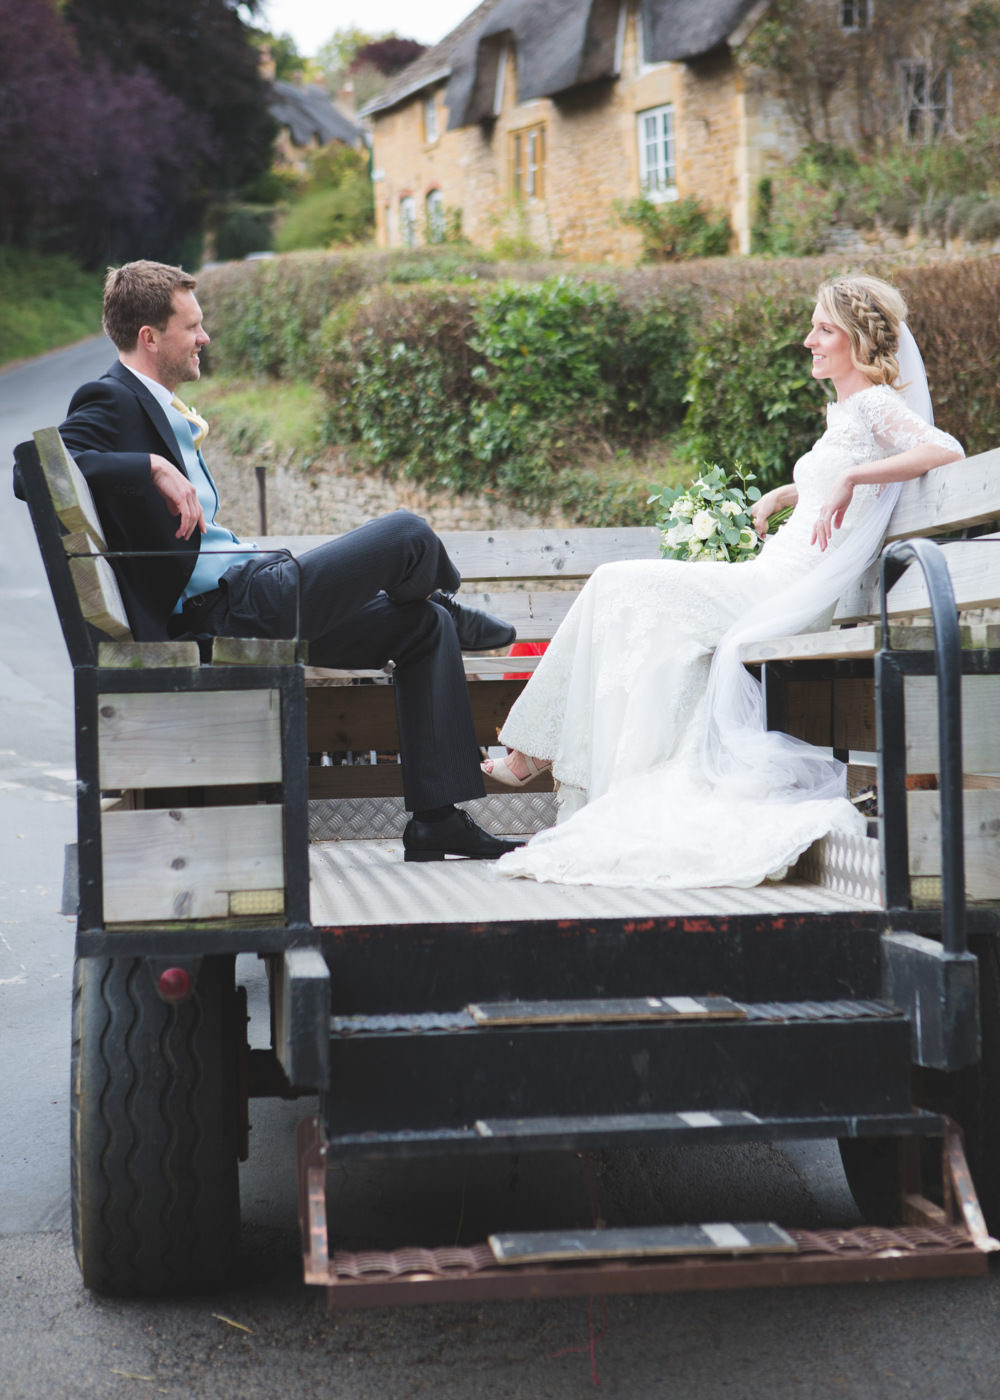 Tractor Trailer Transport Airbnb Wedding Pickavance Weddings